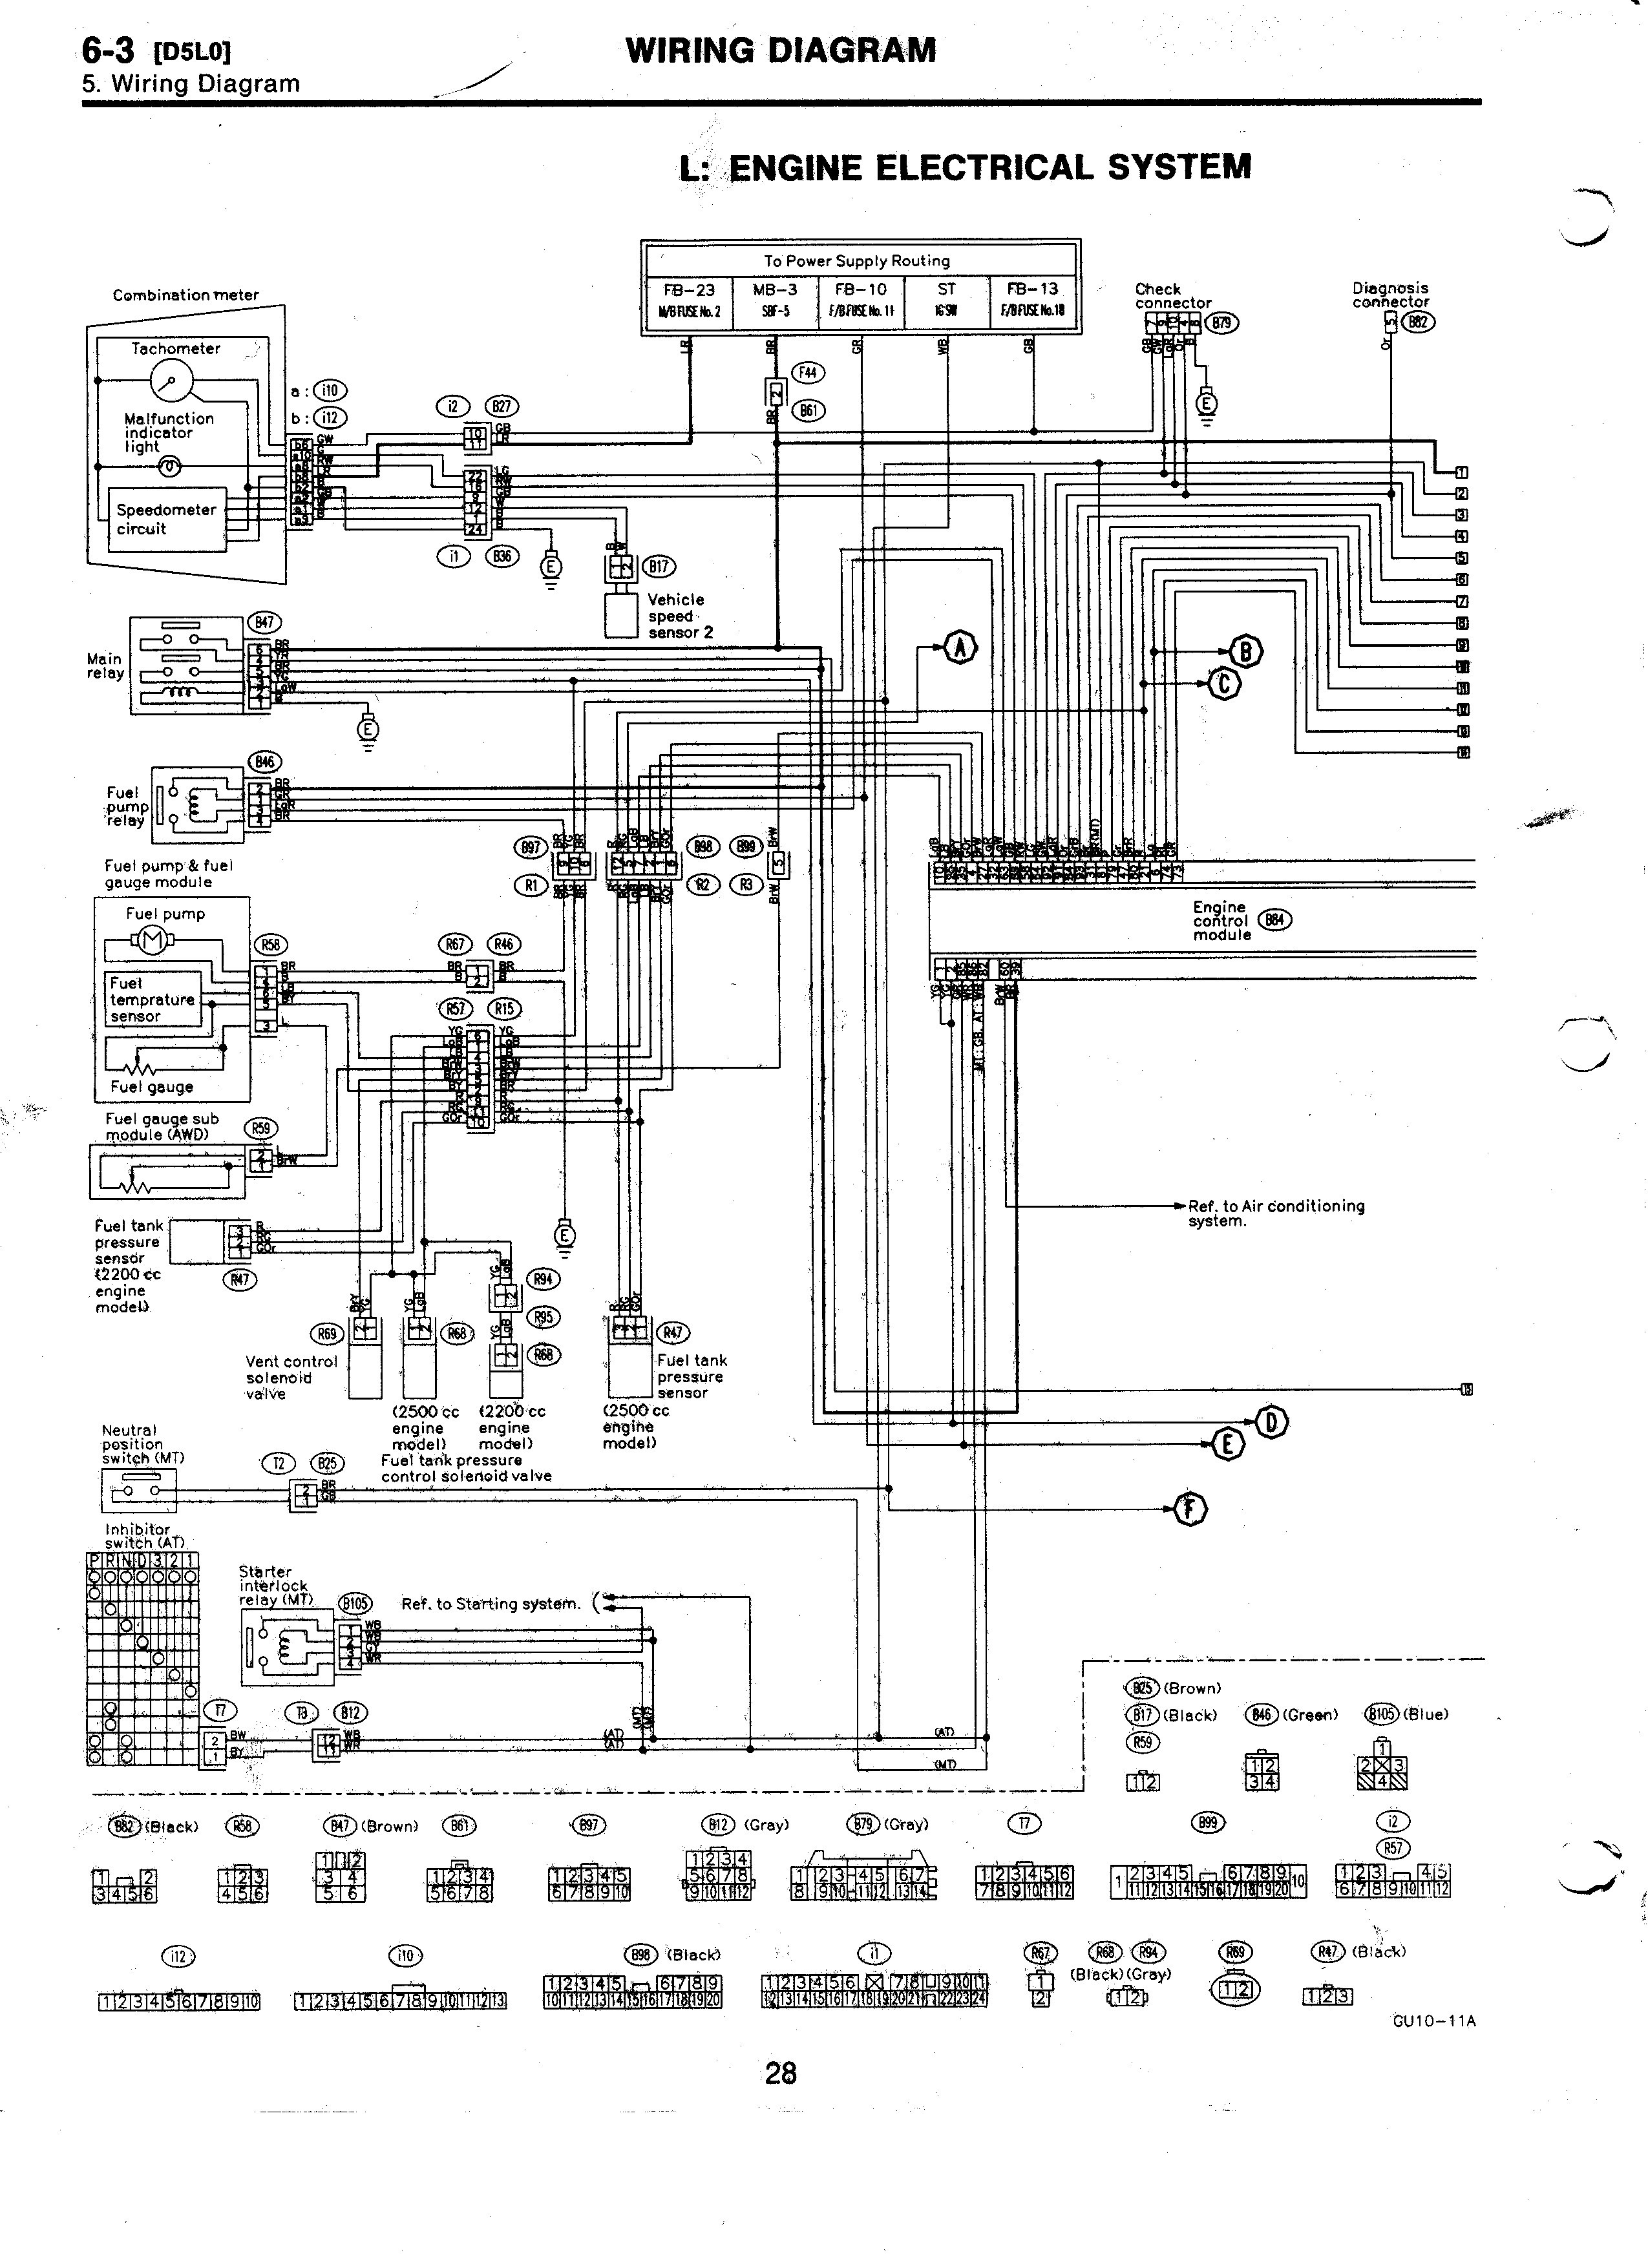 Peterbilt Horn Wiring Diagram Free Picture Schematic Library Of 2001 379 Pto Smart Diagrams U2022 Rh Emgsolutions Co 1988